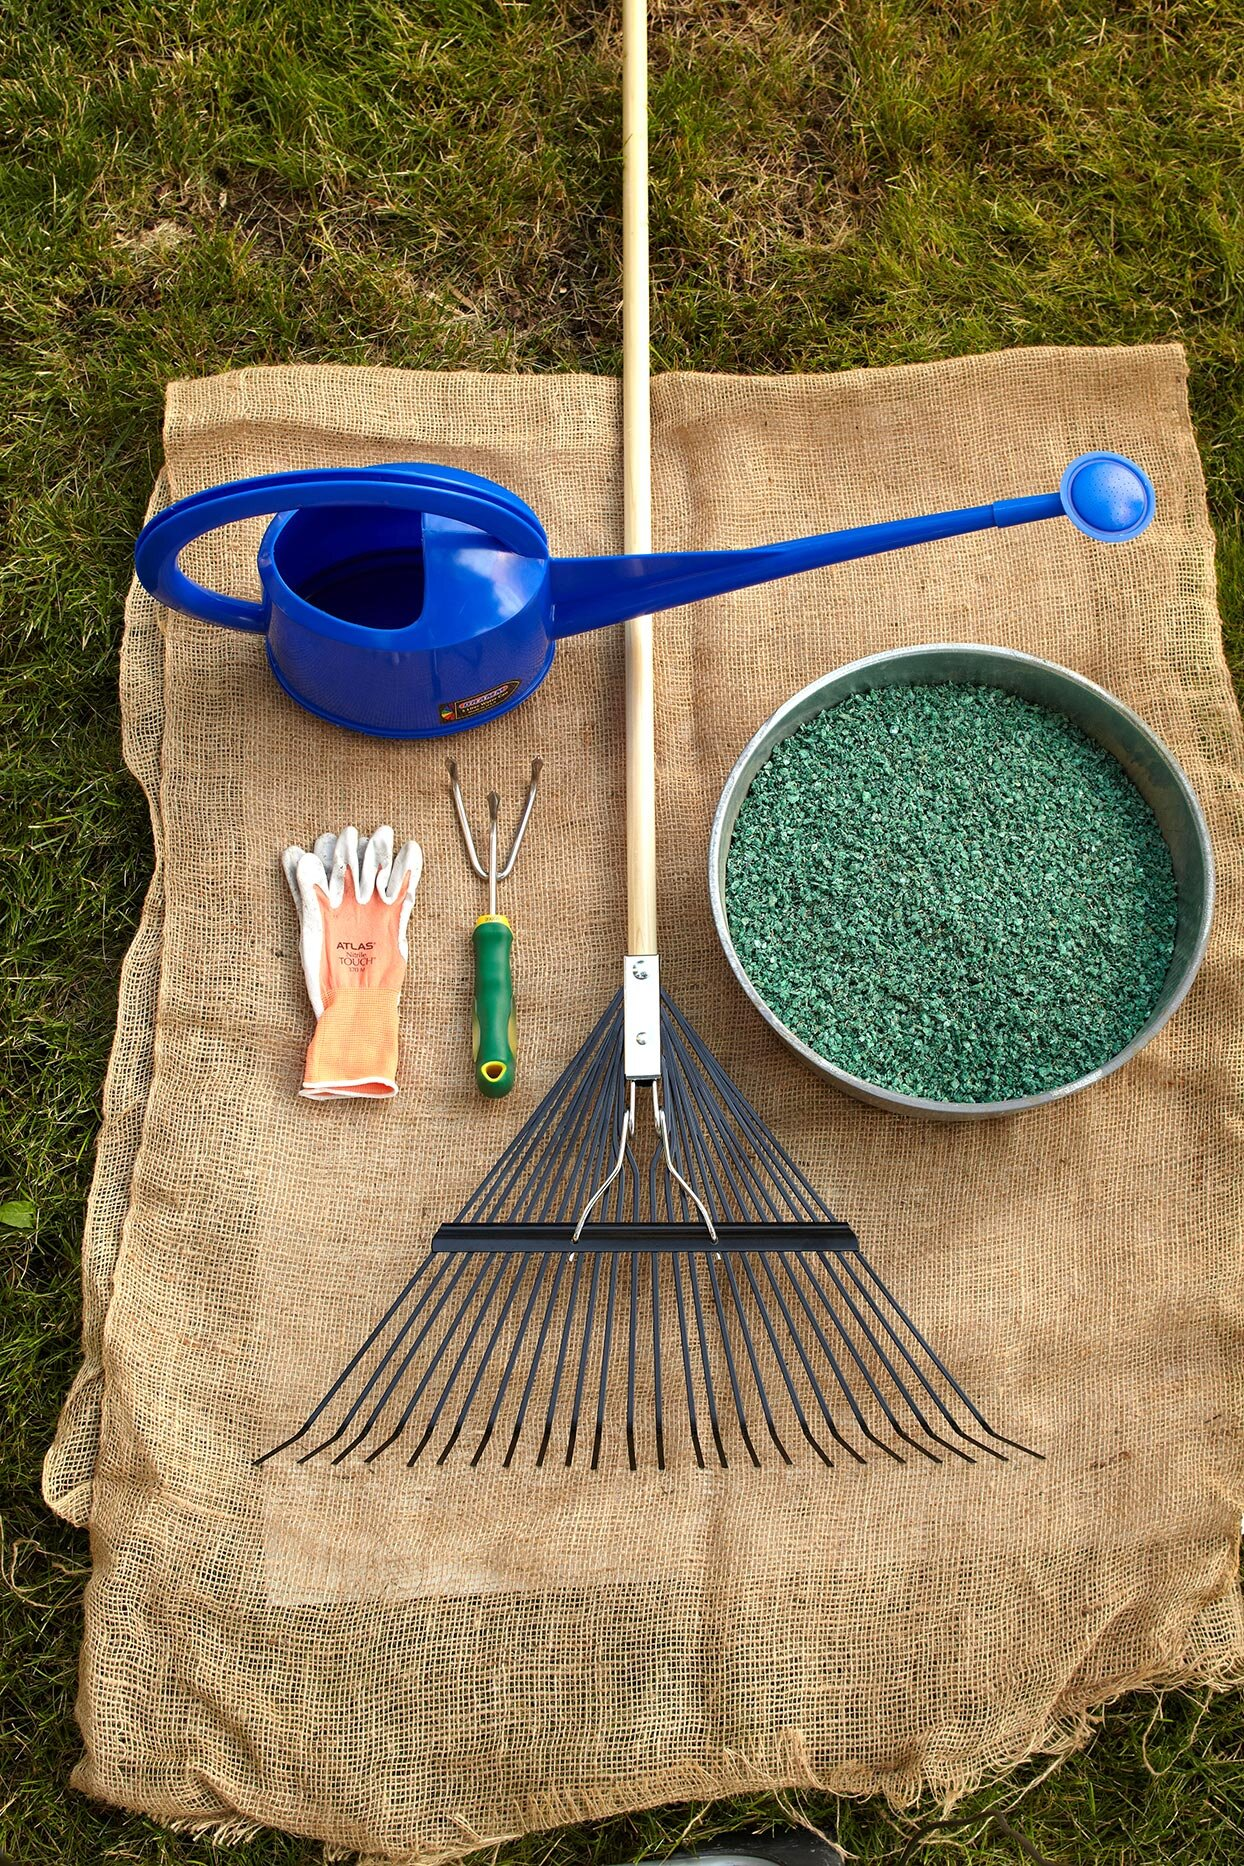 rake, gloves, fertilizer, and watering can tools